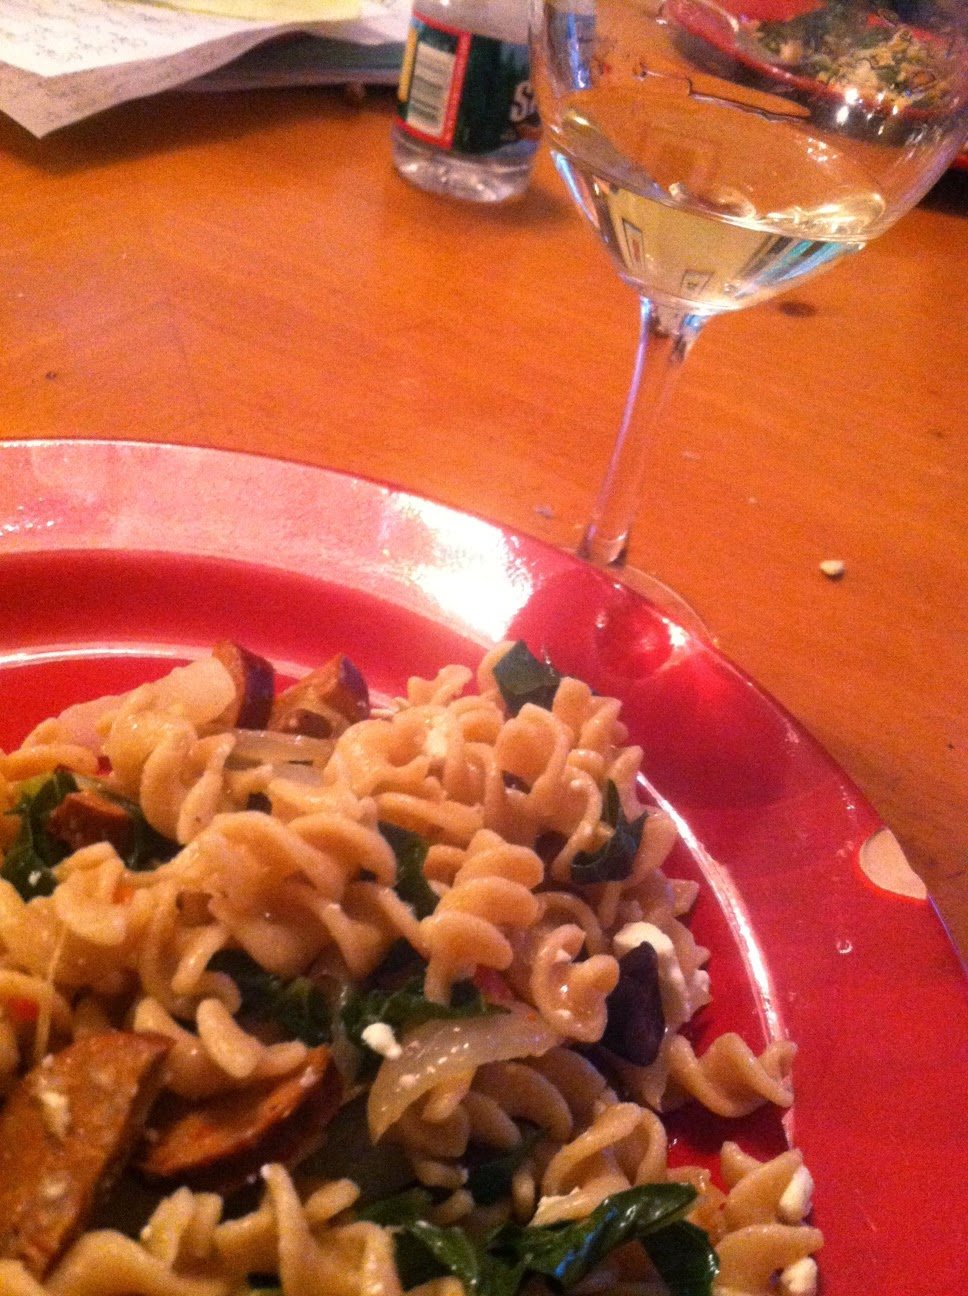 Pouilly Fumé paired with pasta with andouille sausage and collard greens.